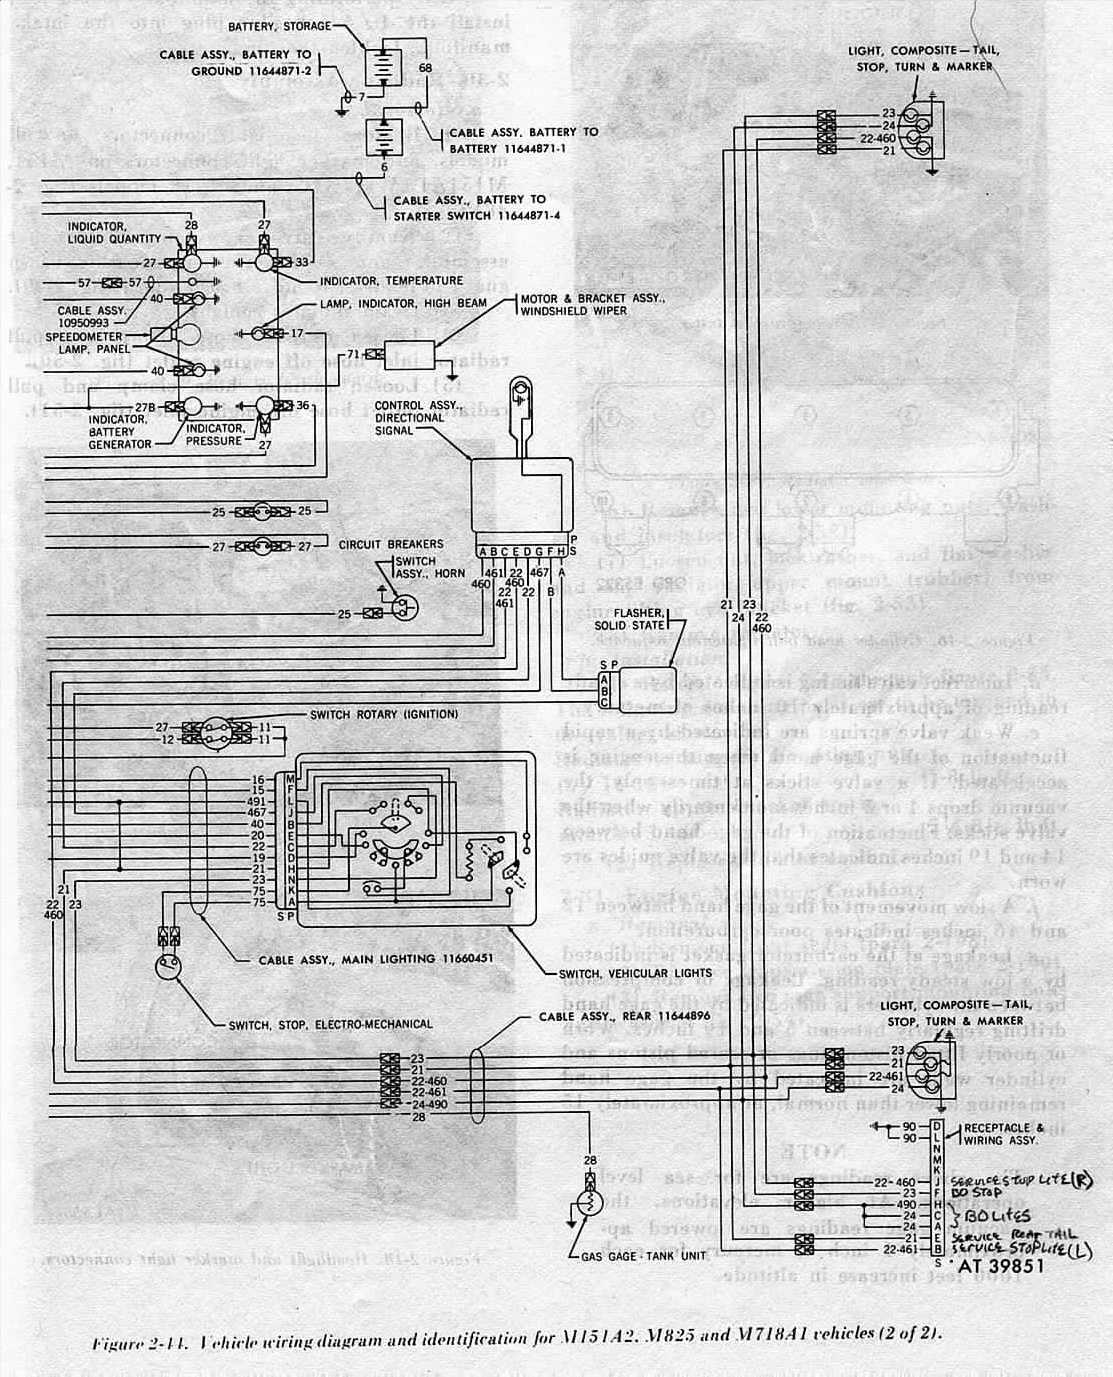 M151a1 Wiring Diagram Academy Ma Mutt Kit First Look Oreck Xl Switch Diagrams M151a2 Wire 2 M A